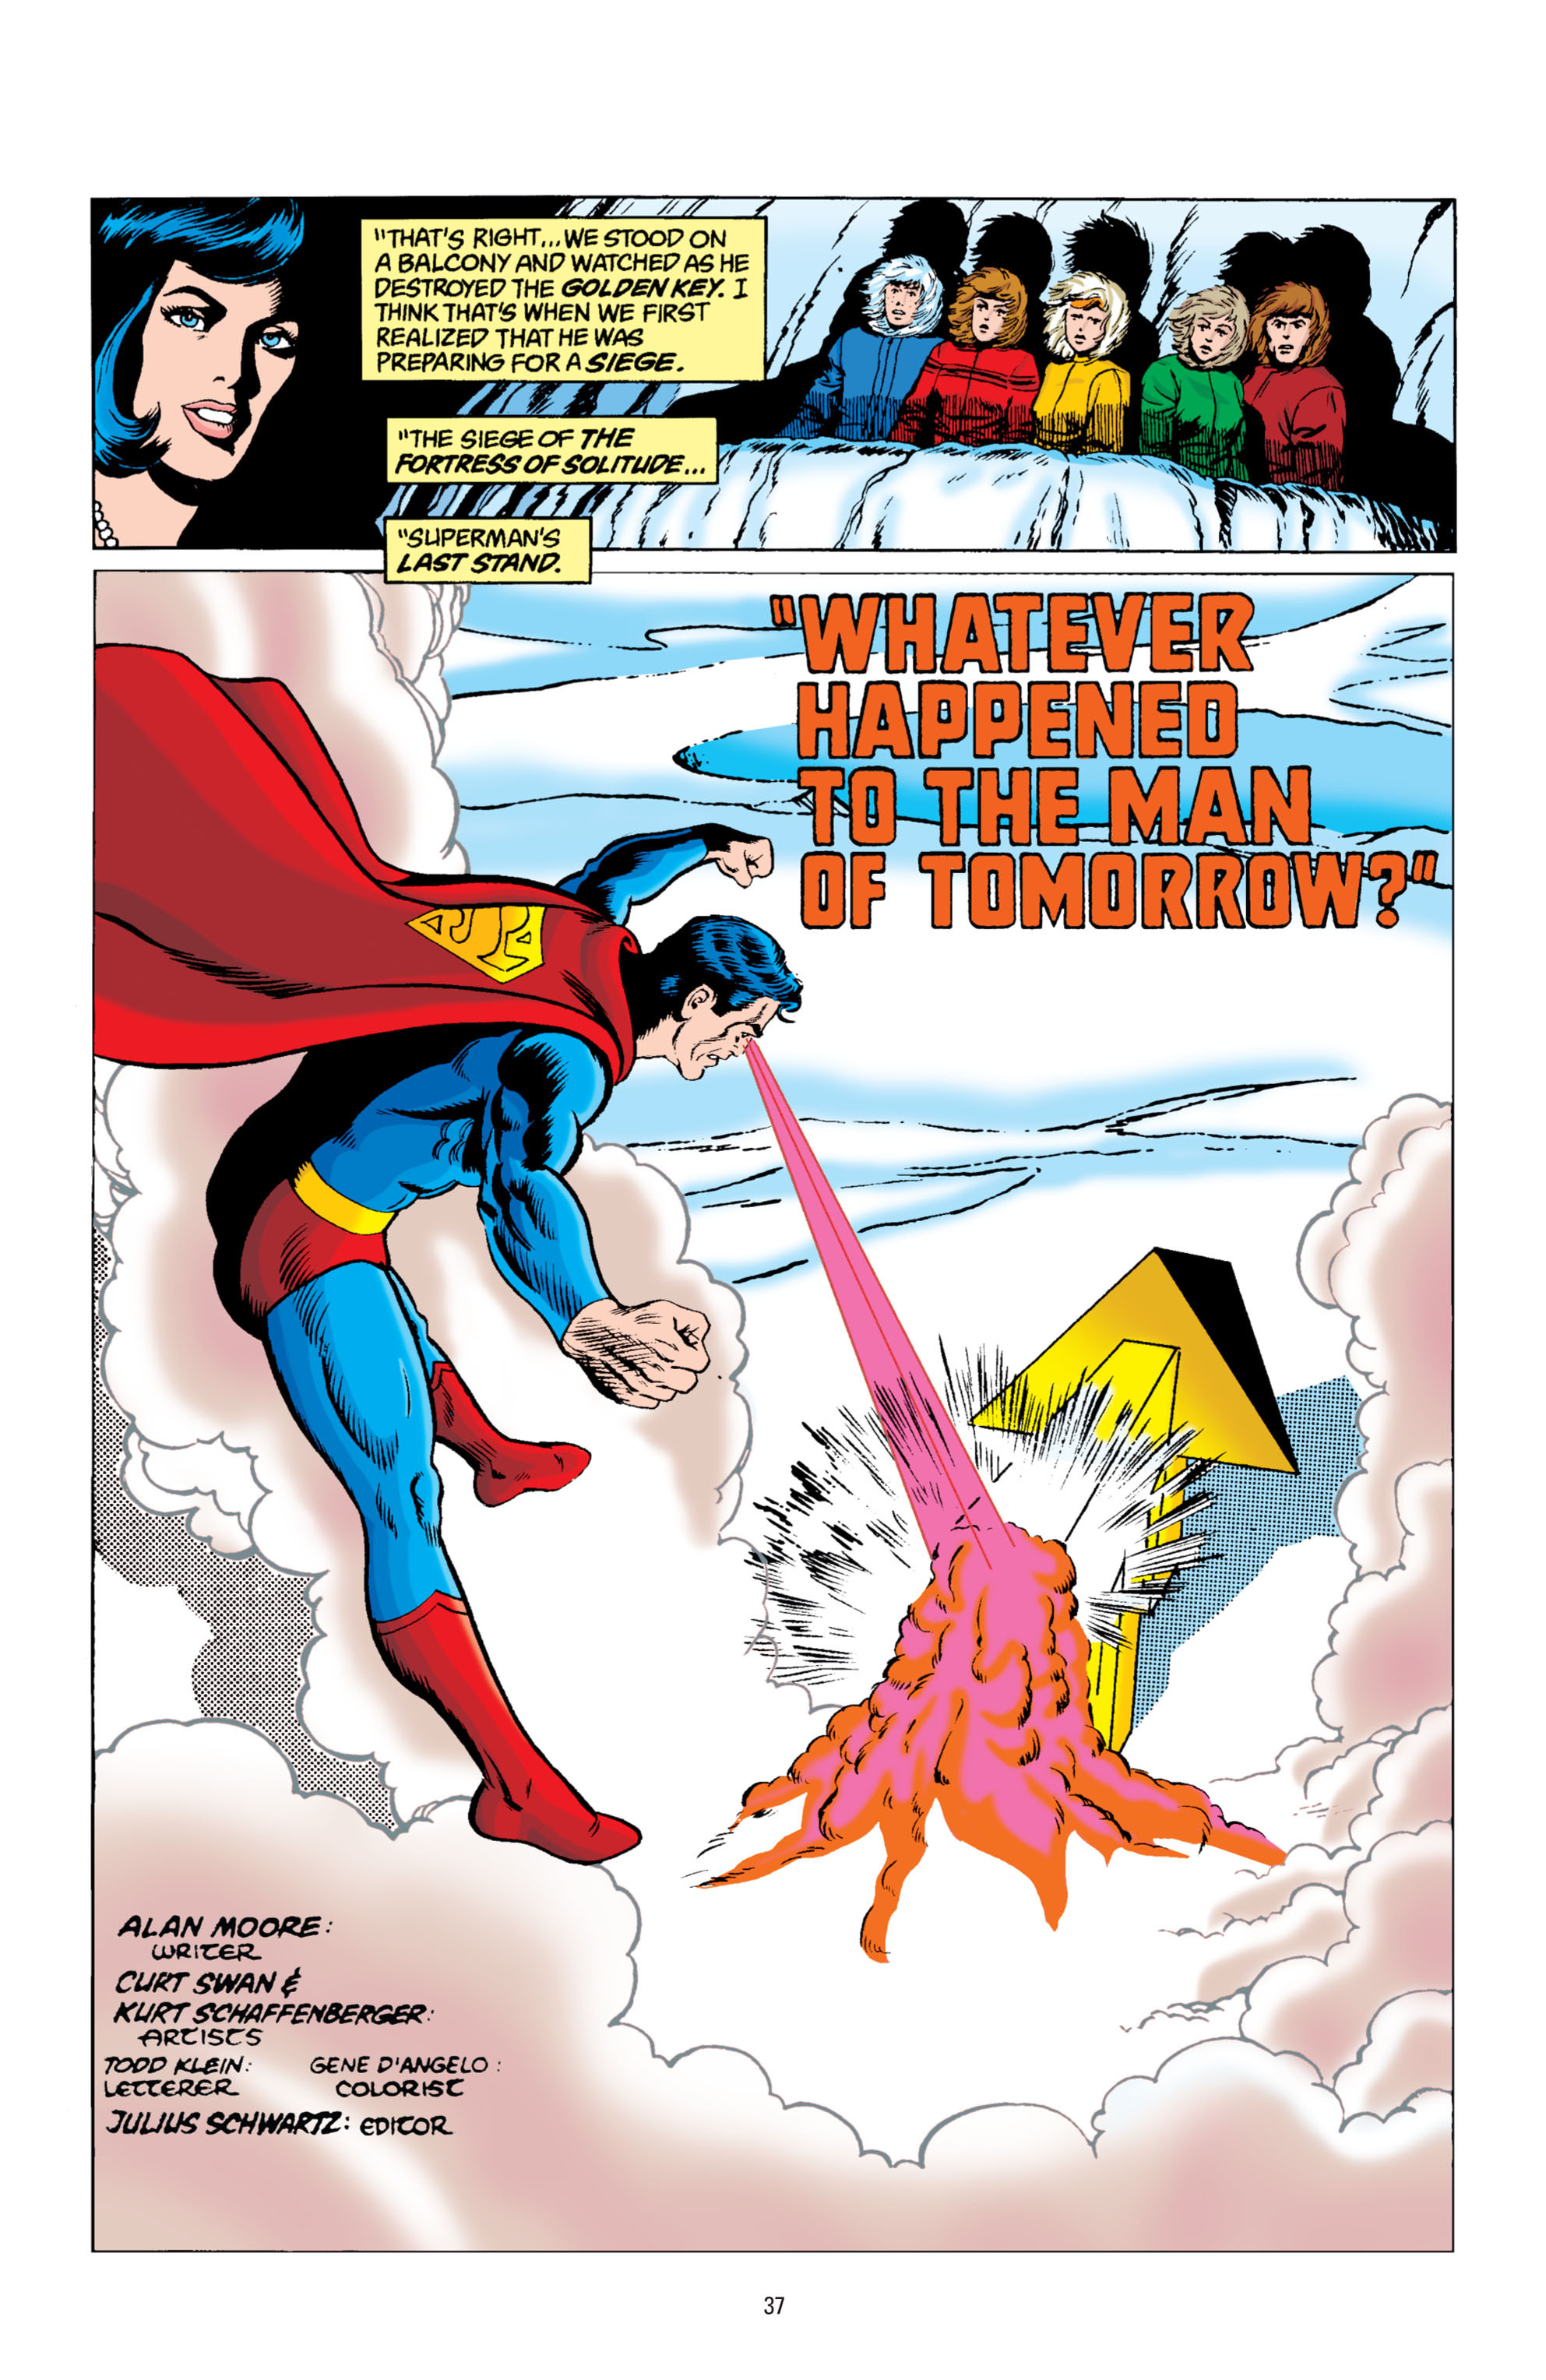 Read online Superman: Whatever Happened to the Man of Tomorrow? comic -  Issue # TPB - 36